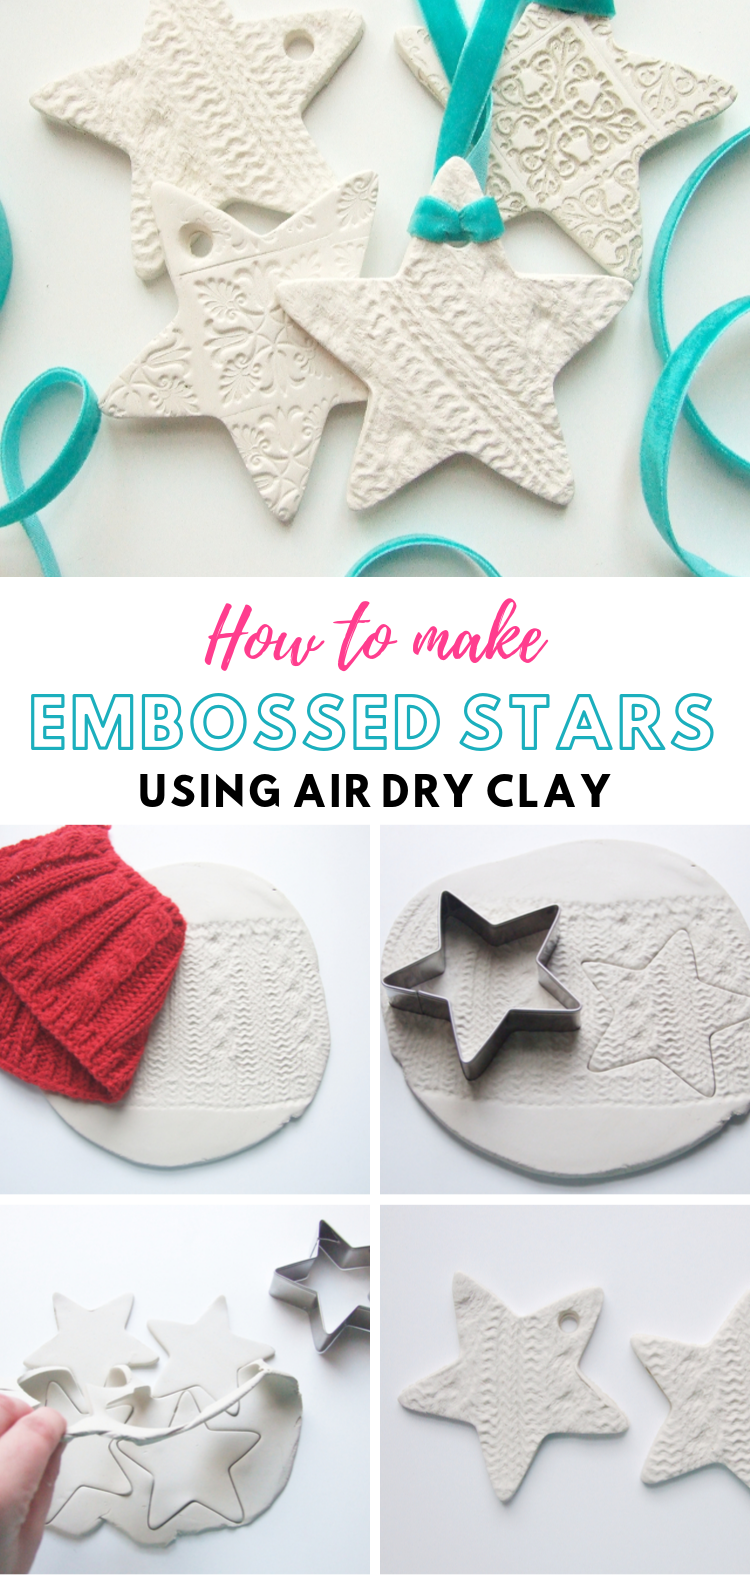 Diy Embossed Clay Star Decorations Gathering Beauty Clay Crafts For Kids Clay Christmas Decorations Clay Crafts